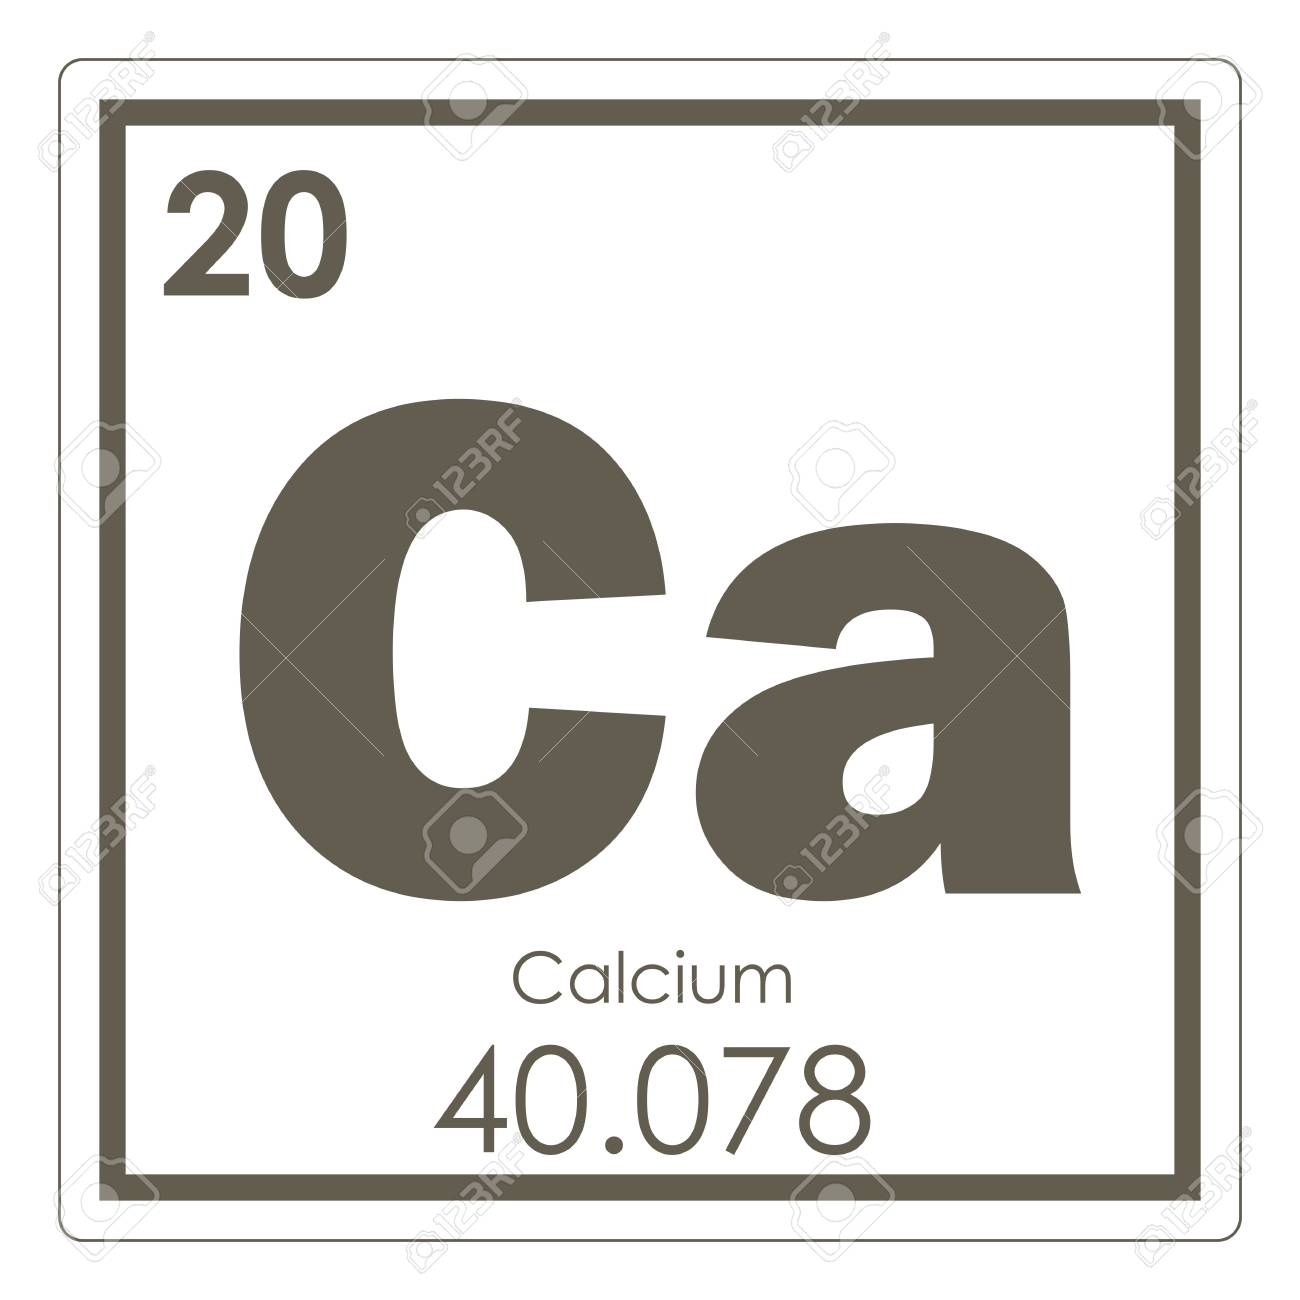 Calcium chemical element periodic table science symbol stock photo calcium chemical element periodic table science symbol stock photo 95130094 urtaz Gallery